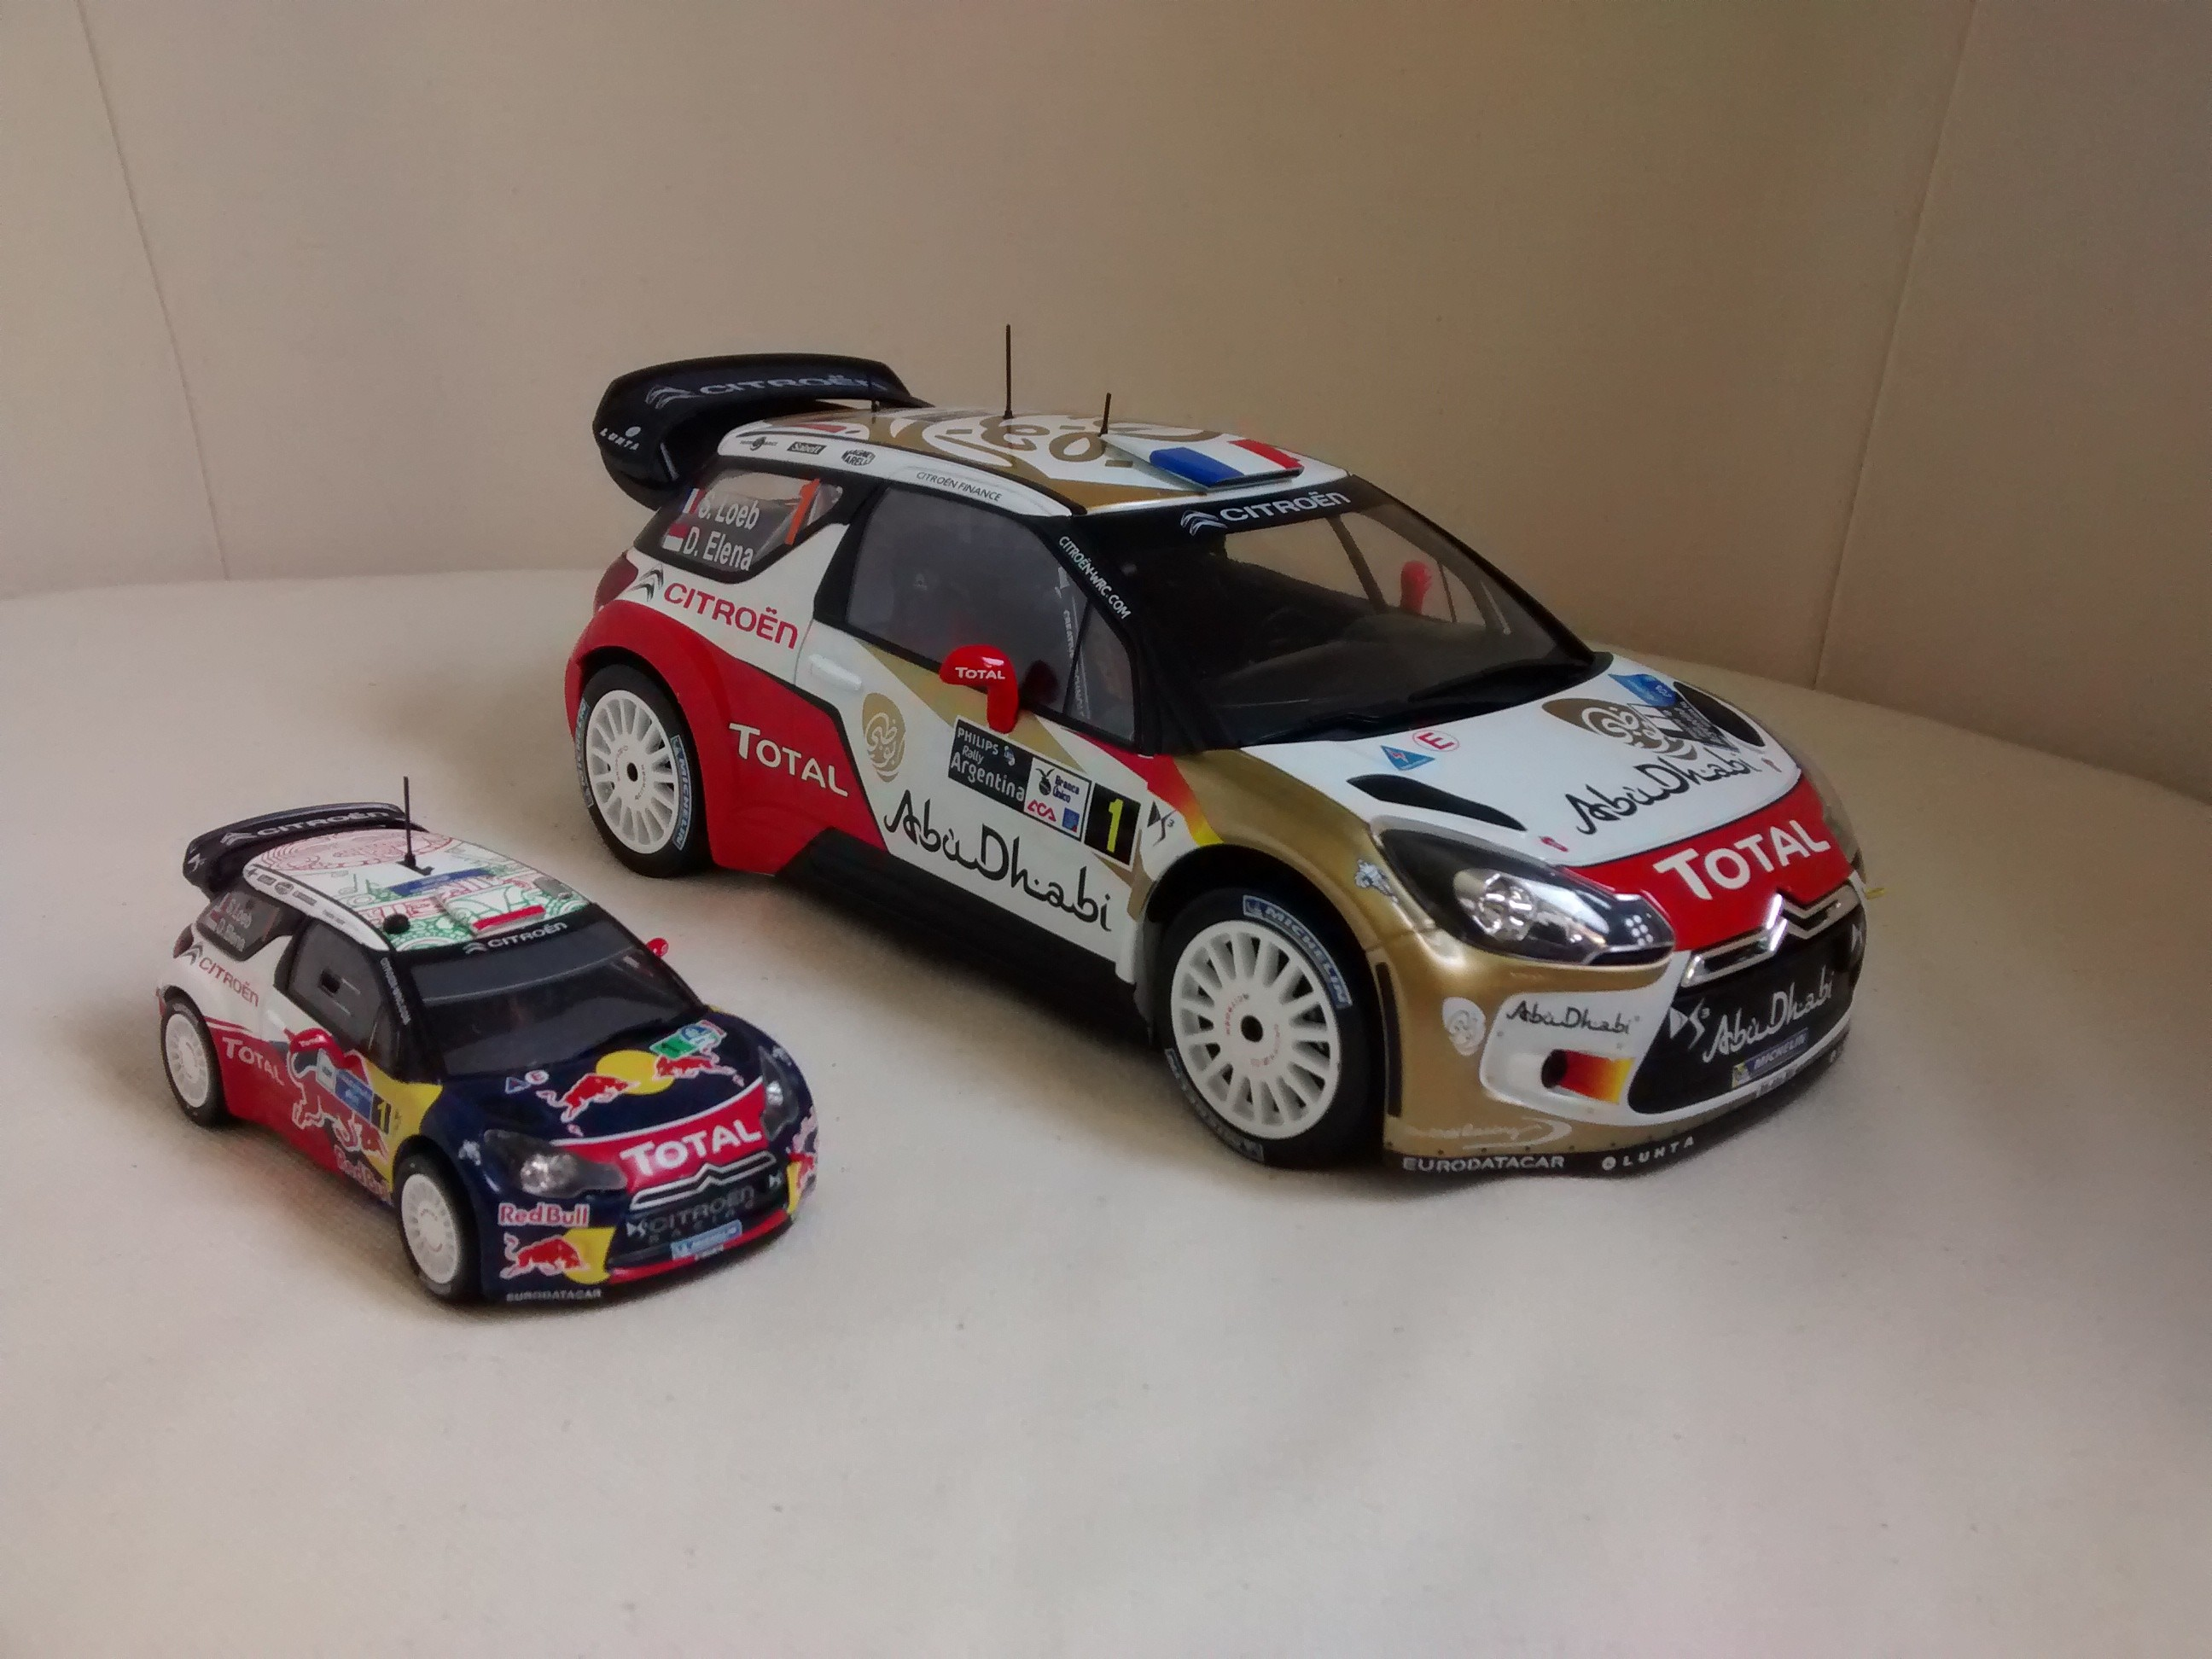 ds3 loeb rallye 1 18 et 1 43 crvtt 69 photos club. Black Bedroom Furniture Sets. Home Design Ideas